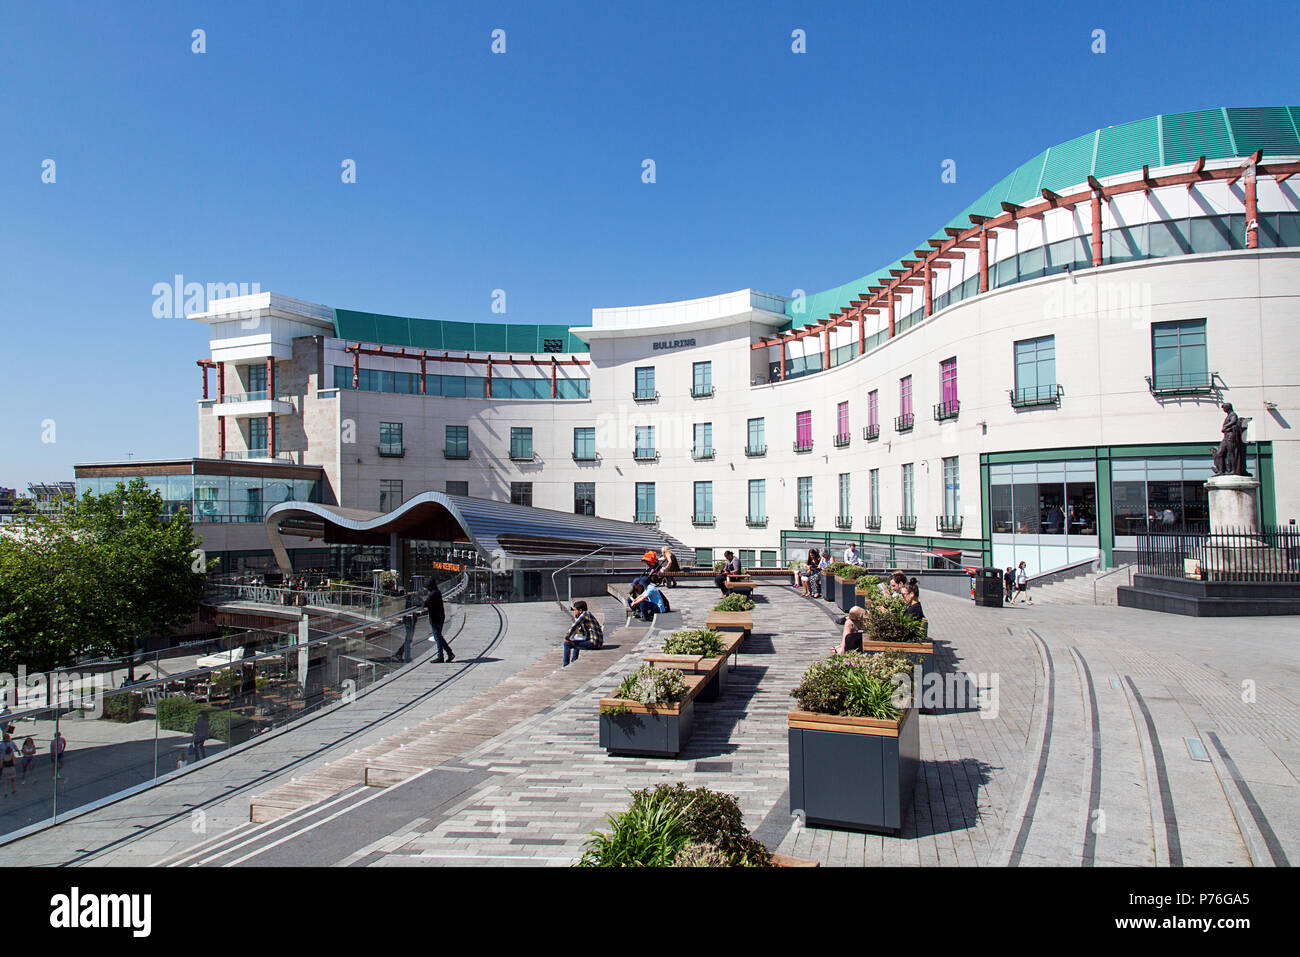 Birmingham, UK: June 29, 2018: The Bullring Shopping Centre - Birmingham. People shopping in the pedestrianised zone. Summer blue sky background. - Stock Image